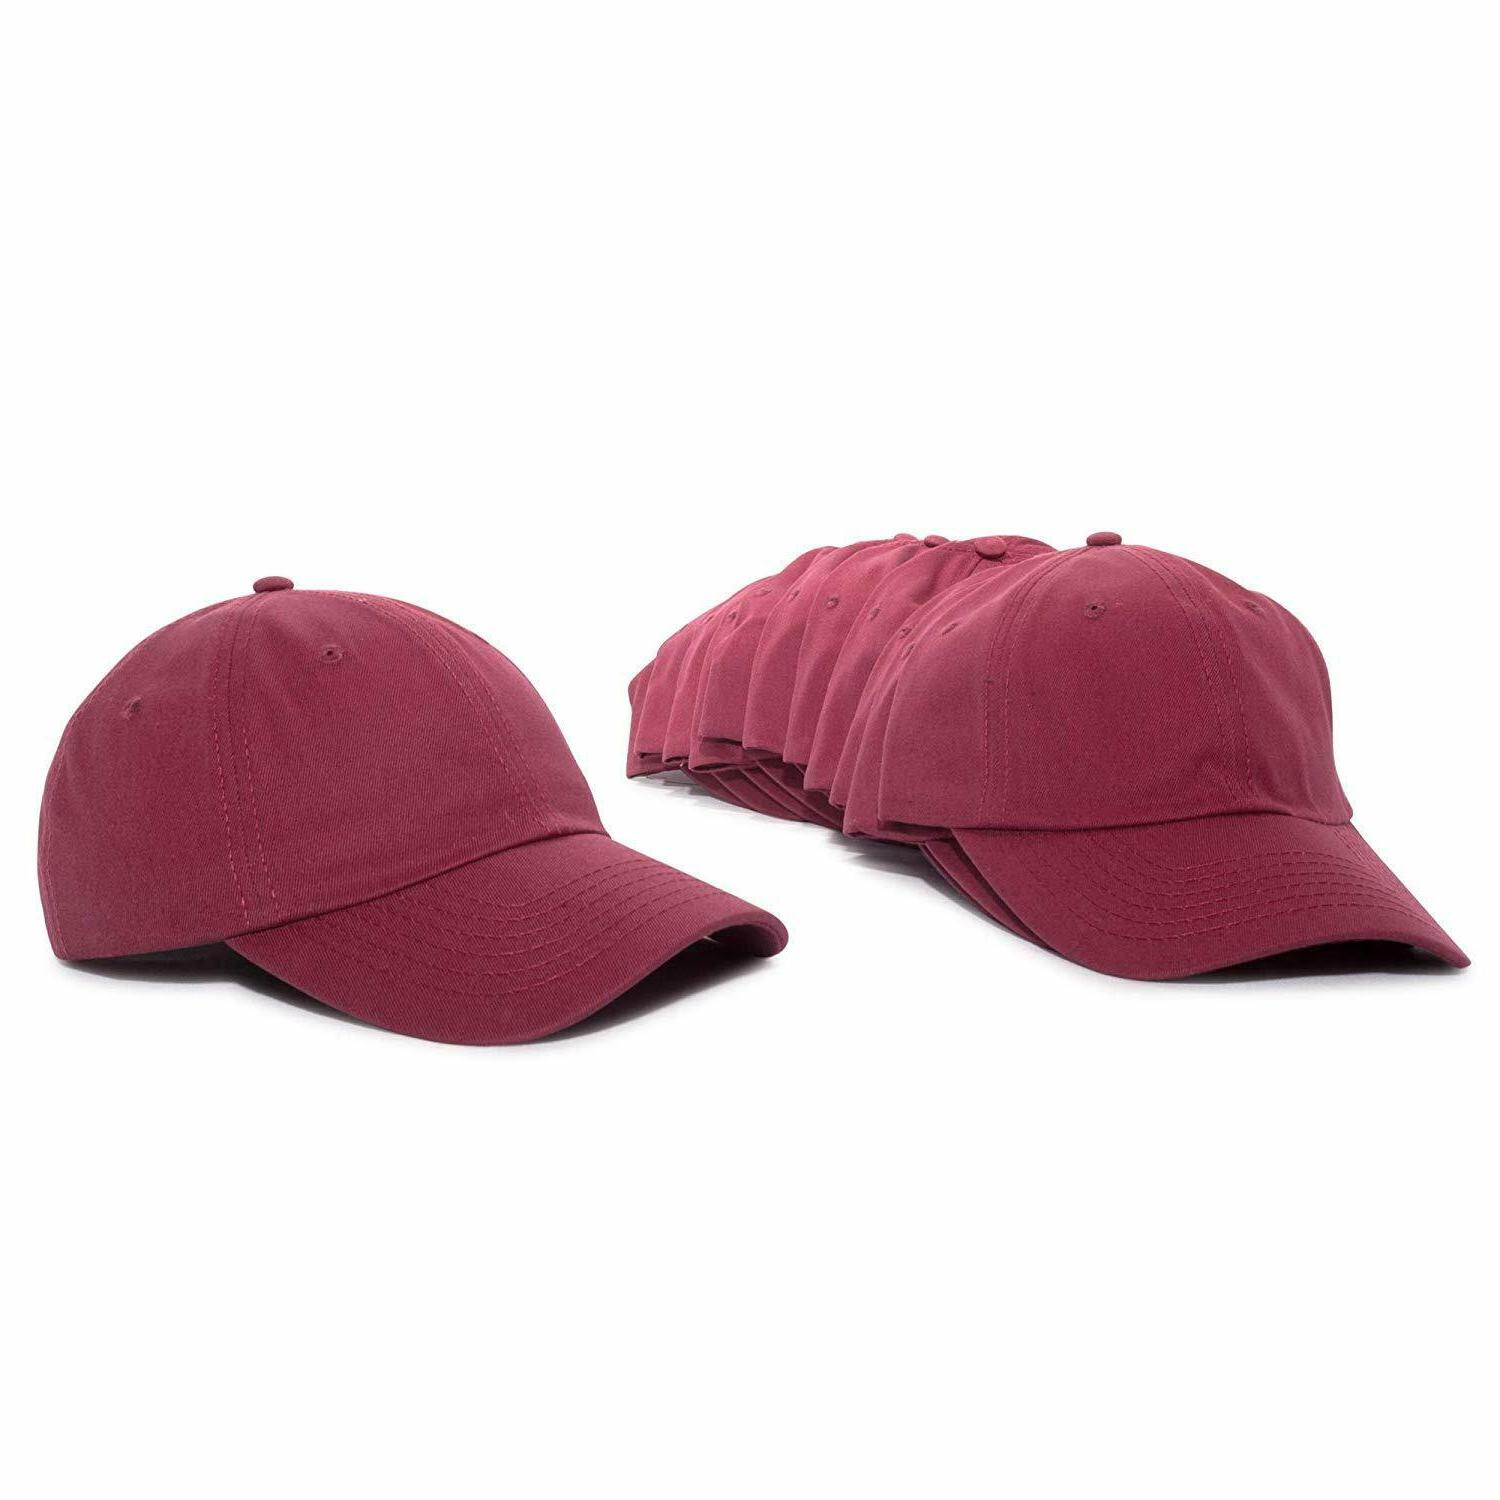 DALIX Trucker Hat Caps for Pack